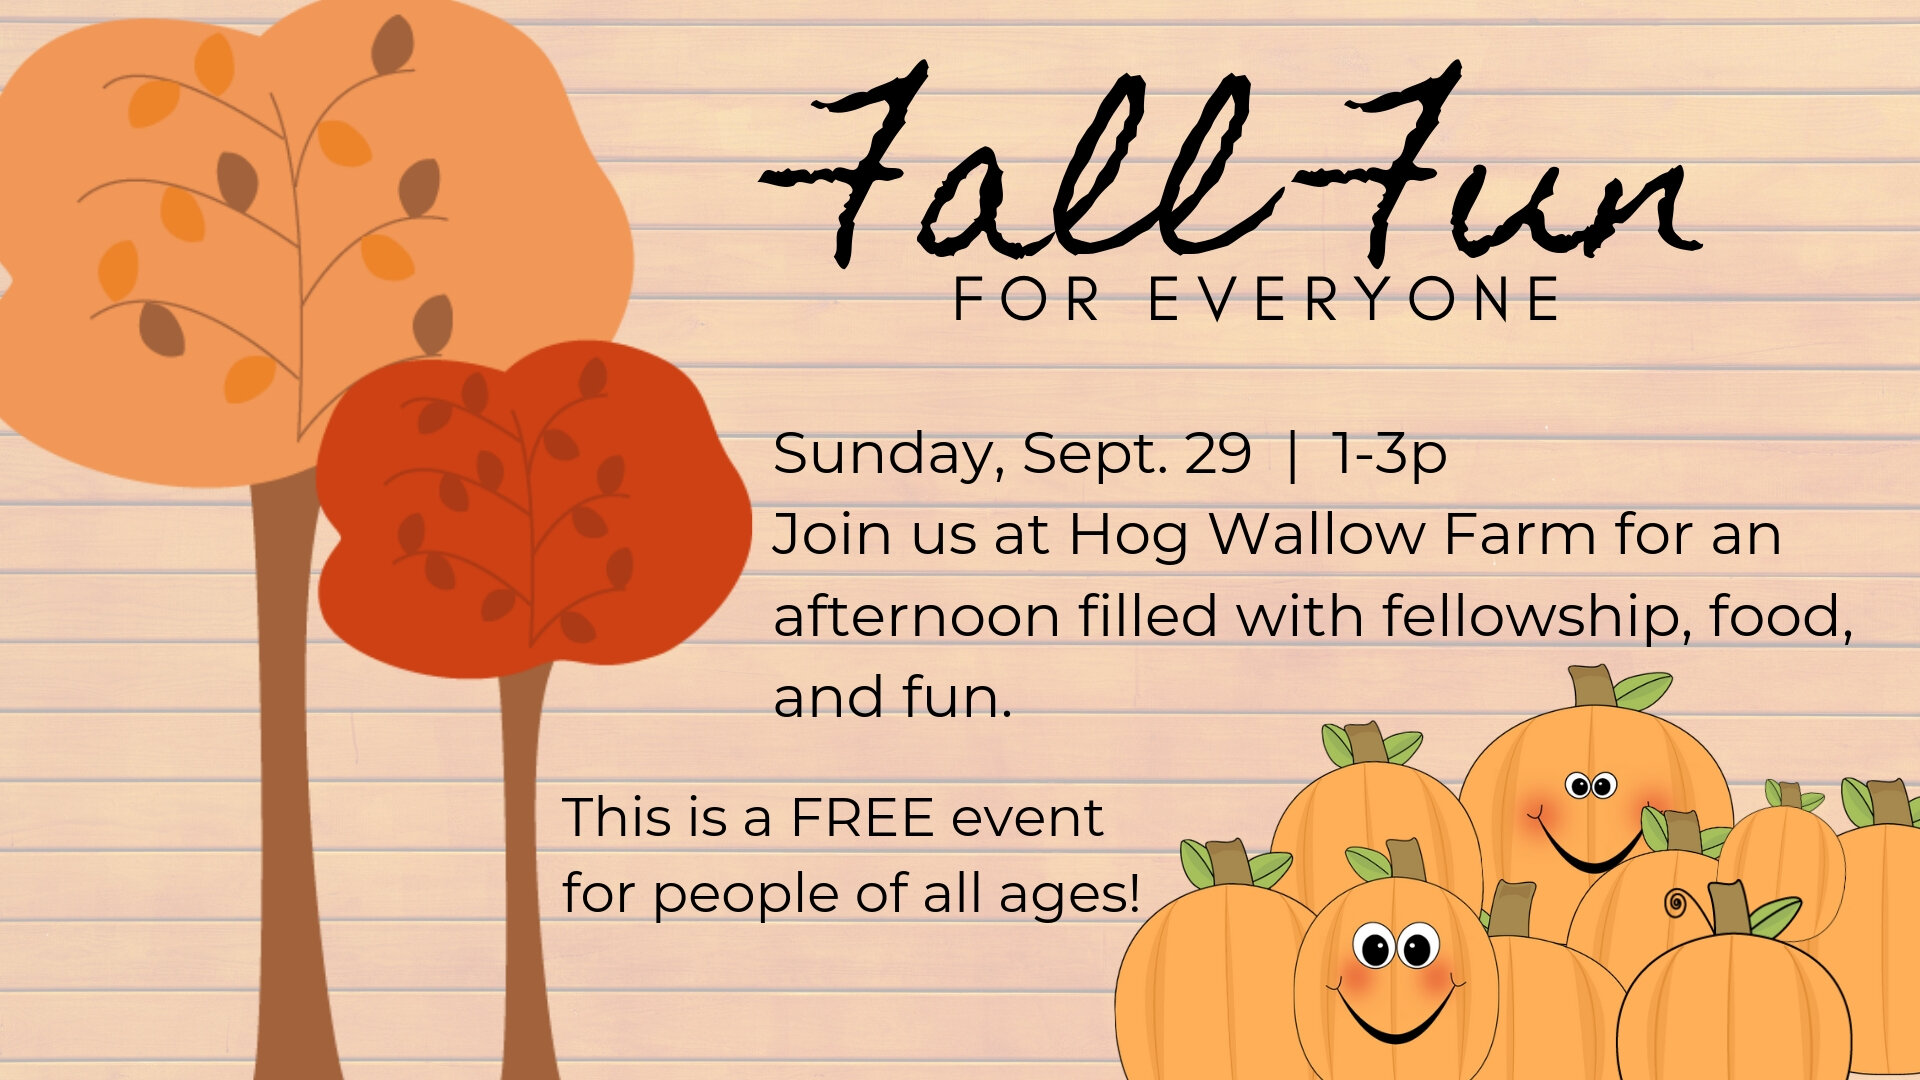 Fall Fun for website 2019 title and details.jpg